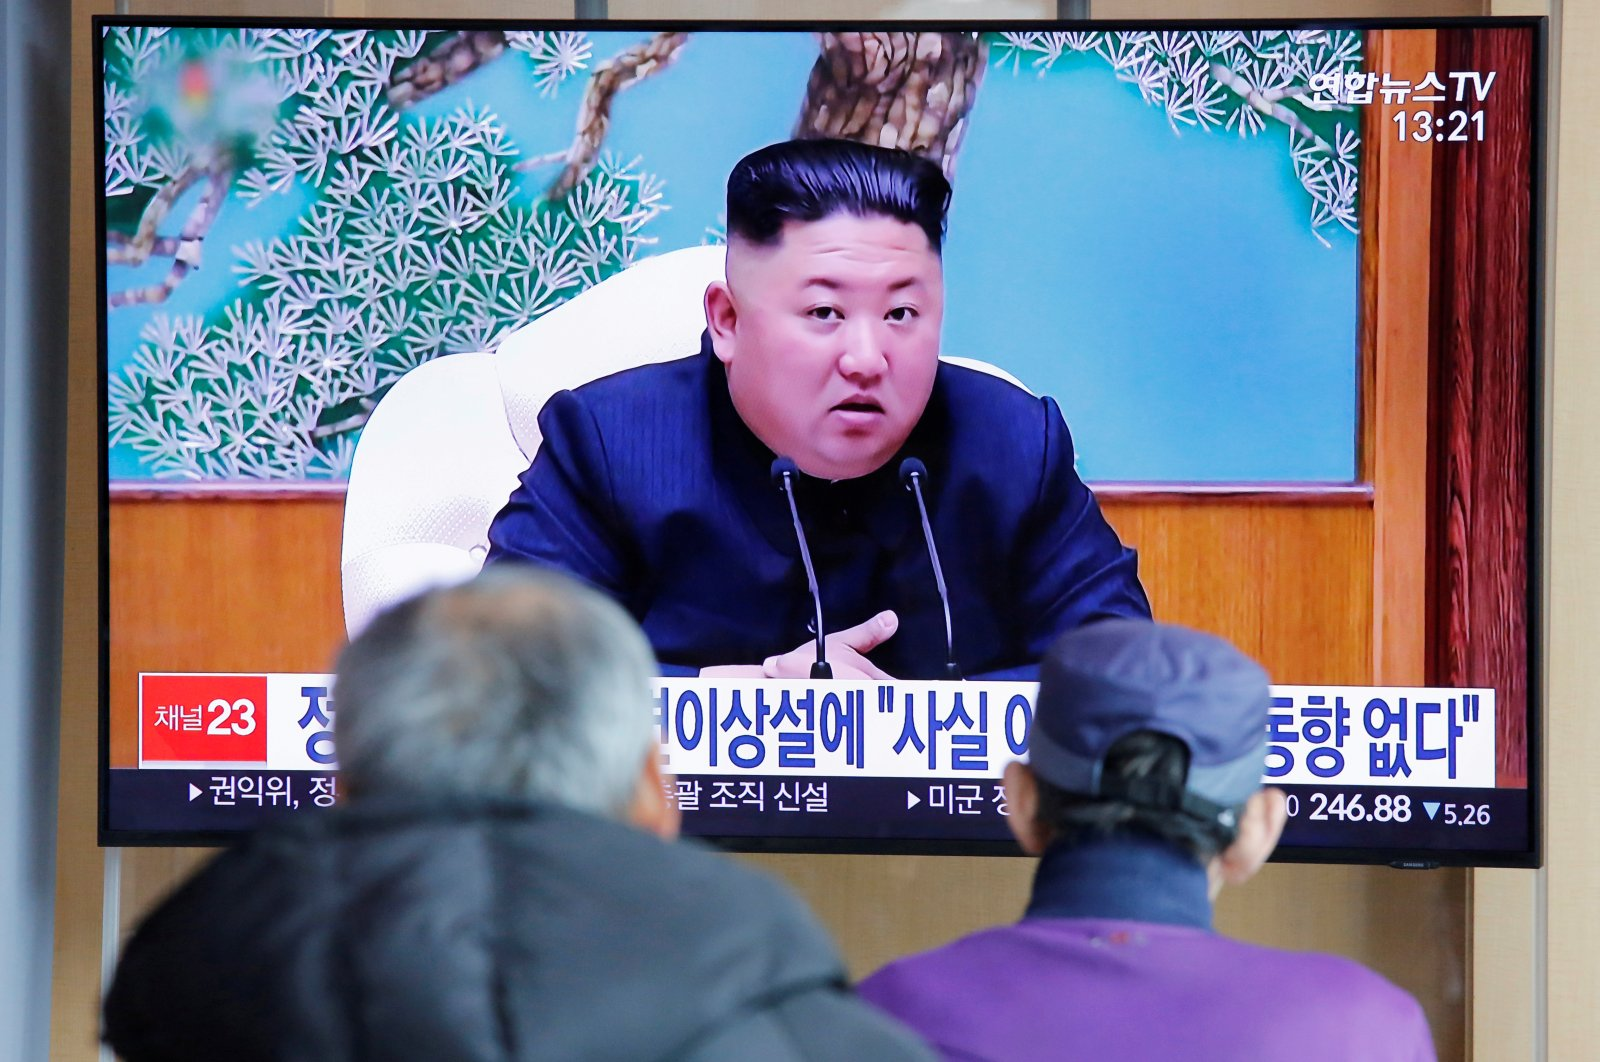 South Korean's watch a TV broadcasting a news report on North Korean leader Kim Jong Un, Seoul, April 21, 2020. (Reuters Photo)